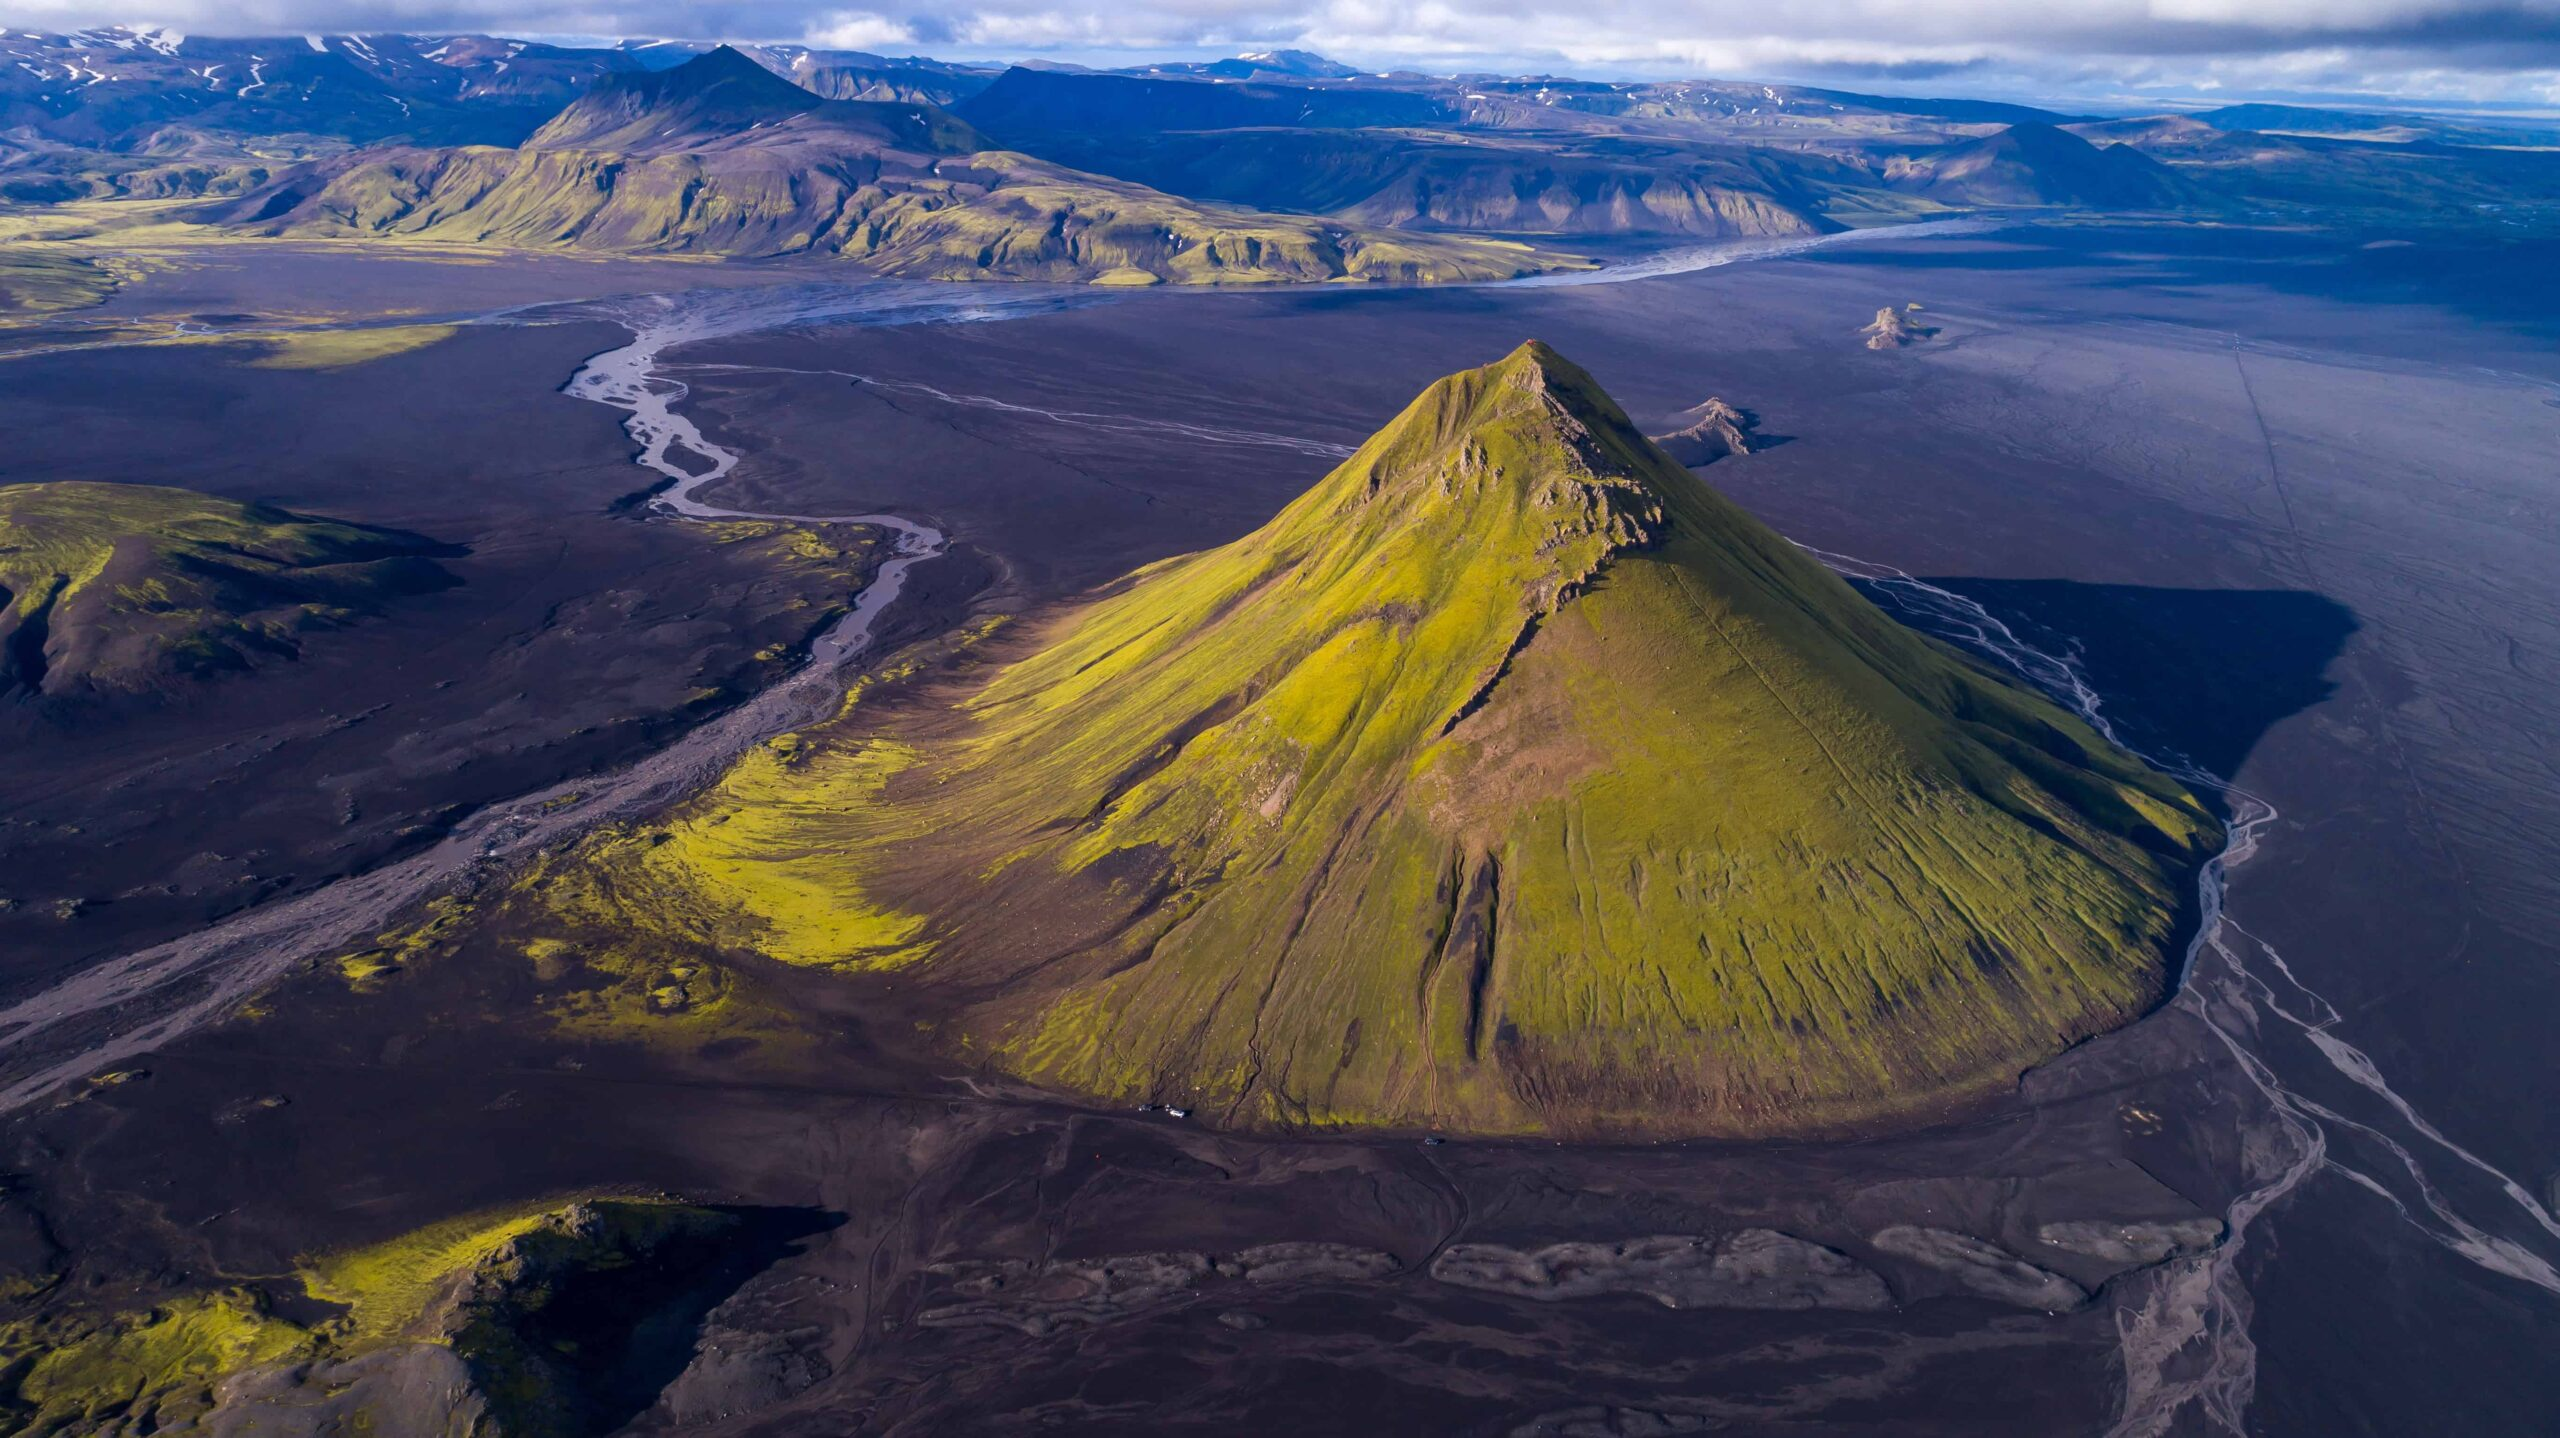 Mælifell volcano mountain in the highlands of Iceland